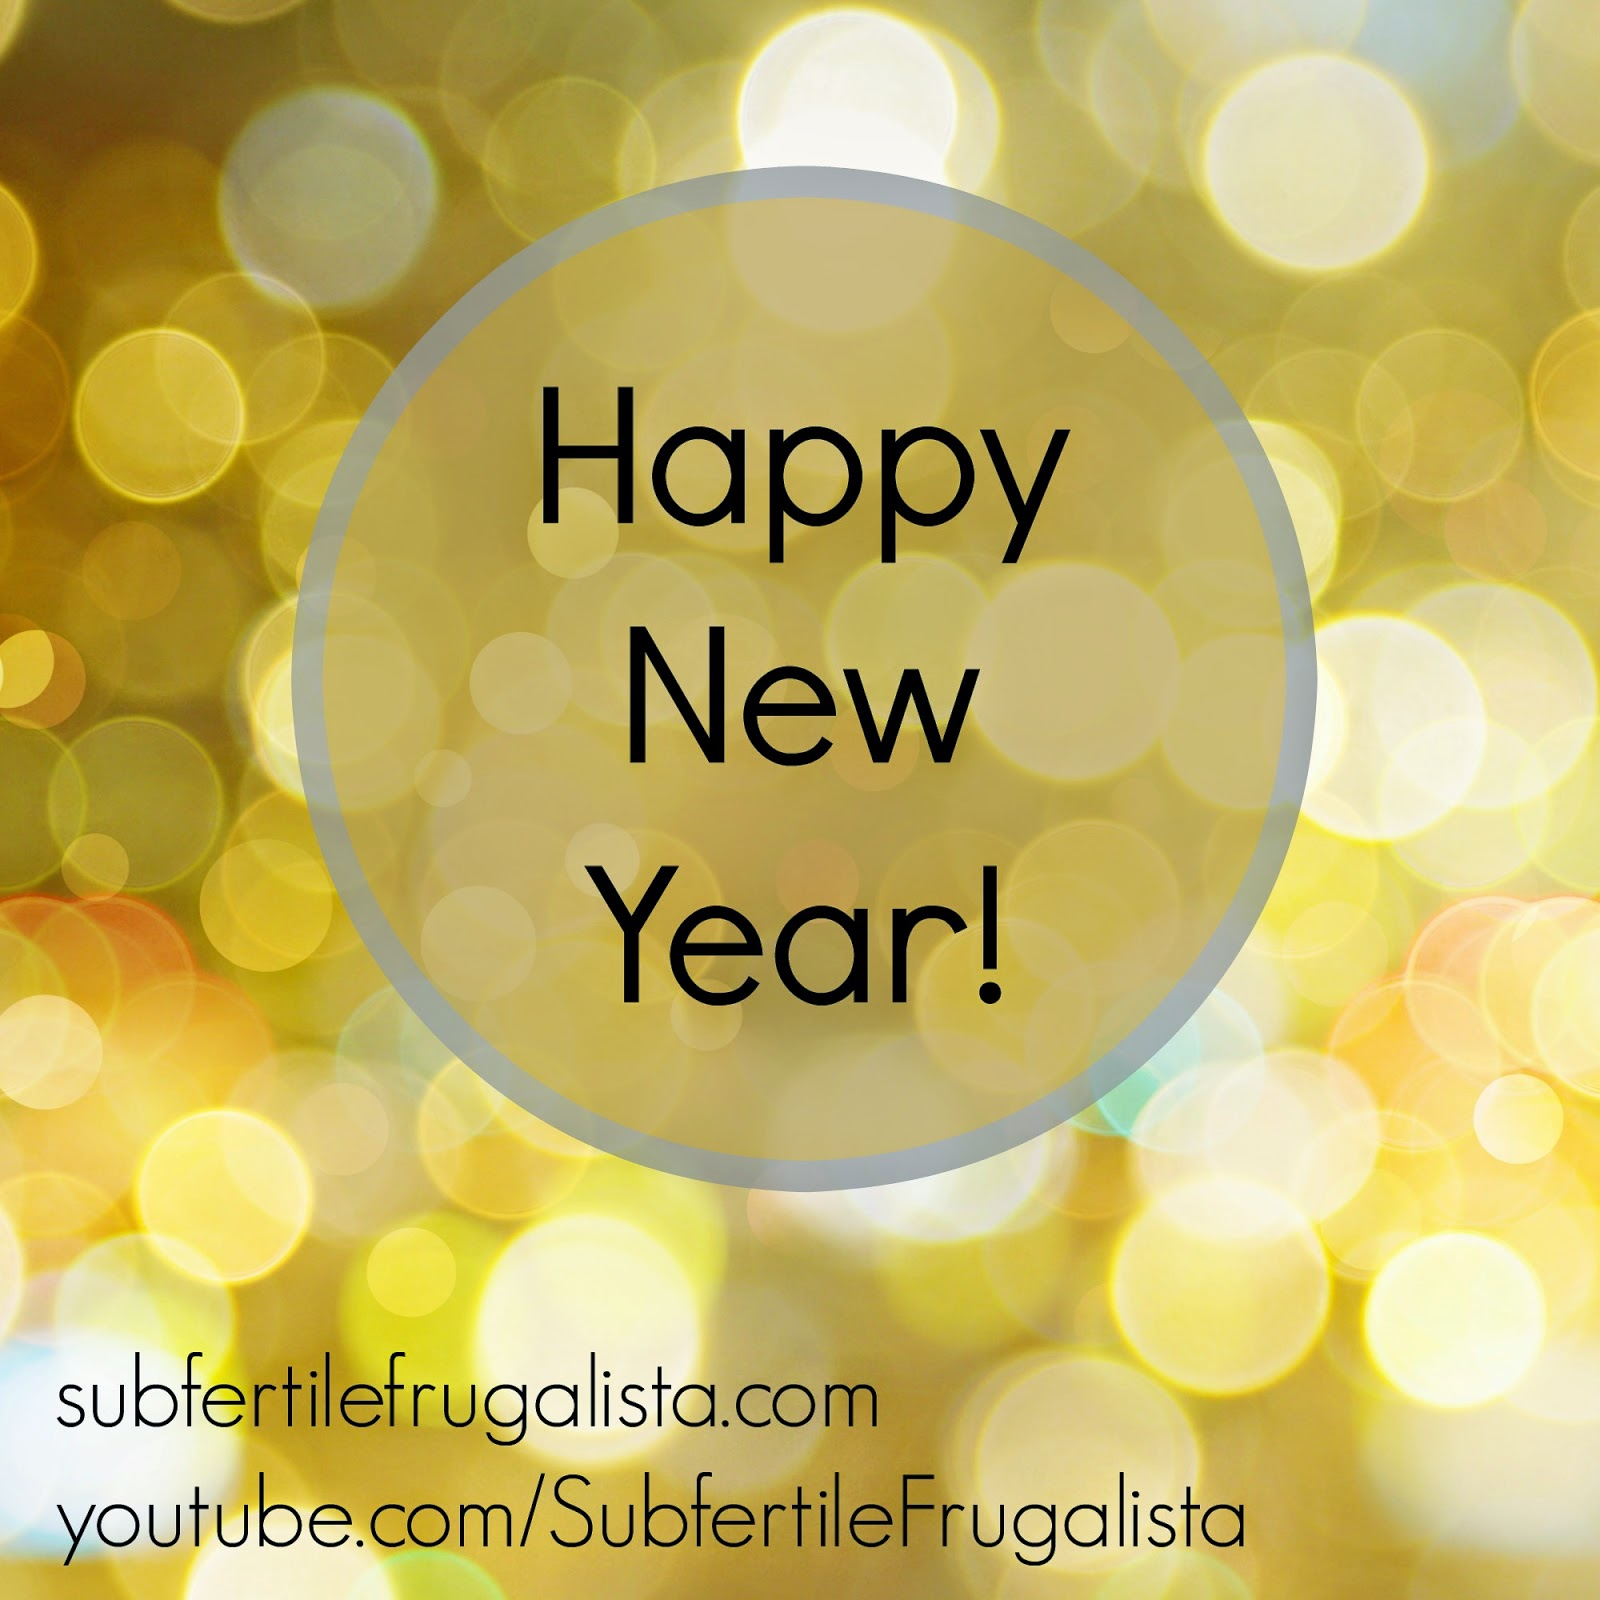 The Subfertile Frugalista: Happy New Year! | Goals for the Blog + ...